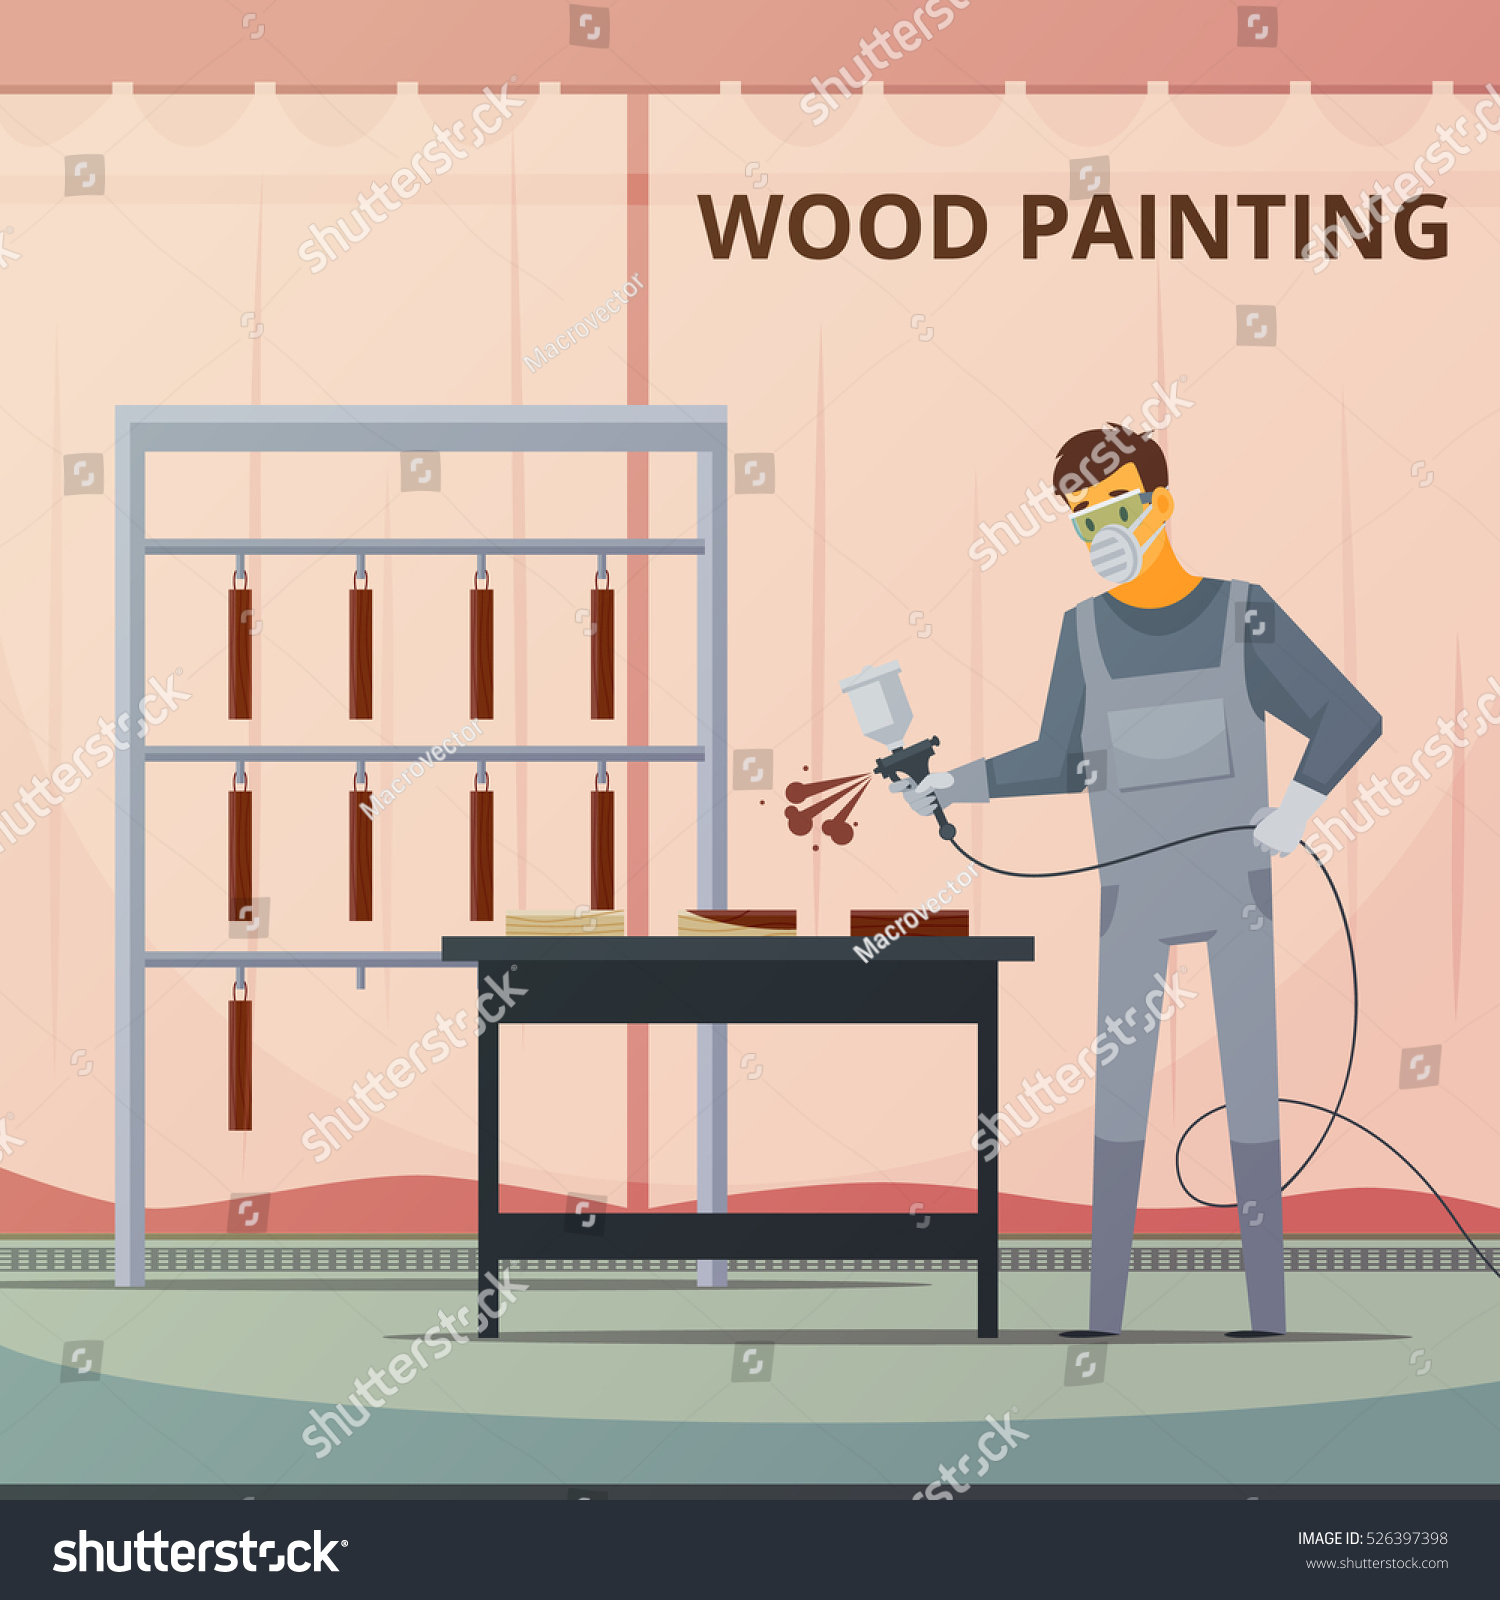 Professional woodwork painter spraying acrylic paint over wood furniture  parts for smooth finish flat poster vector. Professional Woodwork Painter Spraying Acrylic Paint Stock Vector